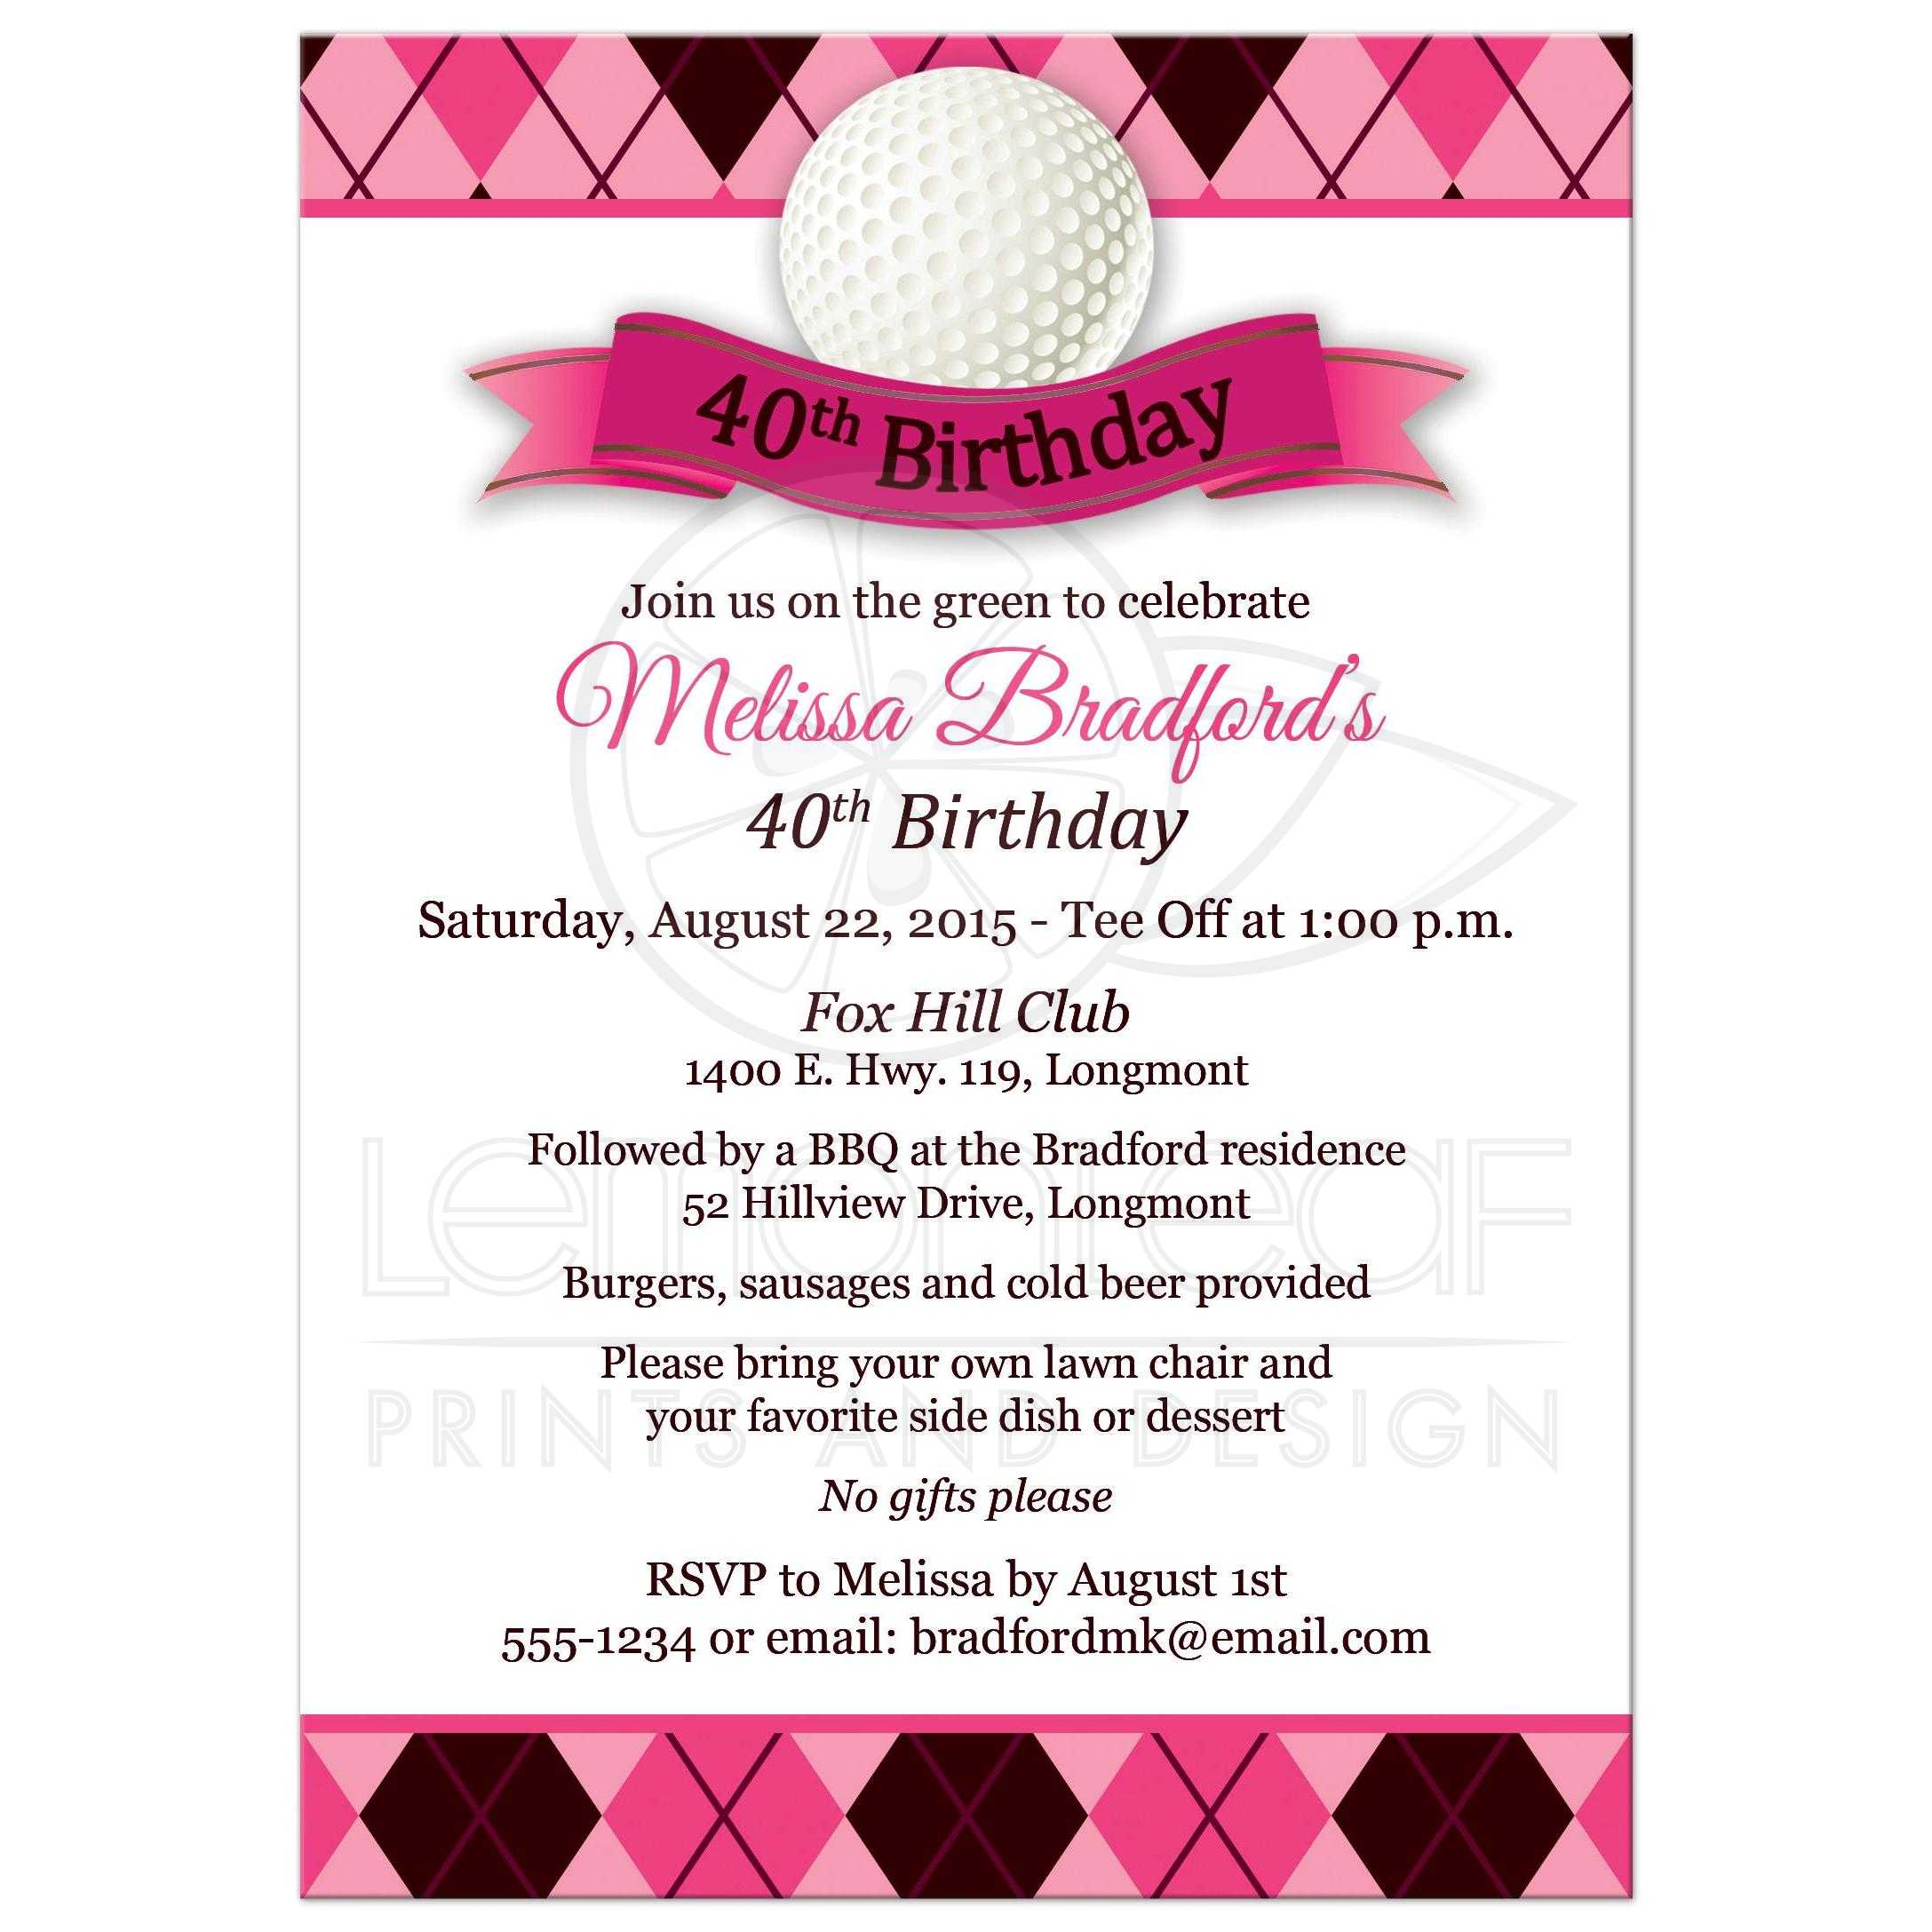 40th Birthday Party Invitation | Golf Theme | Pink, Black, White ...